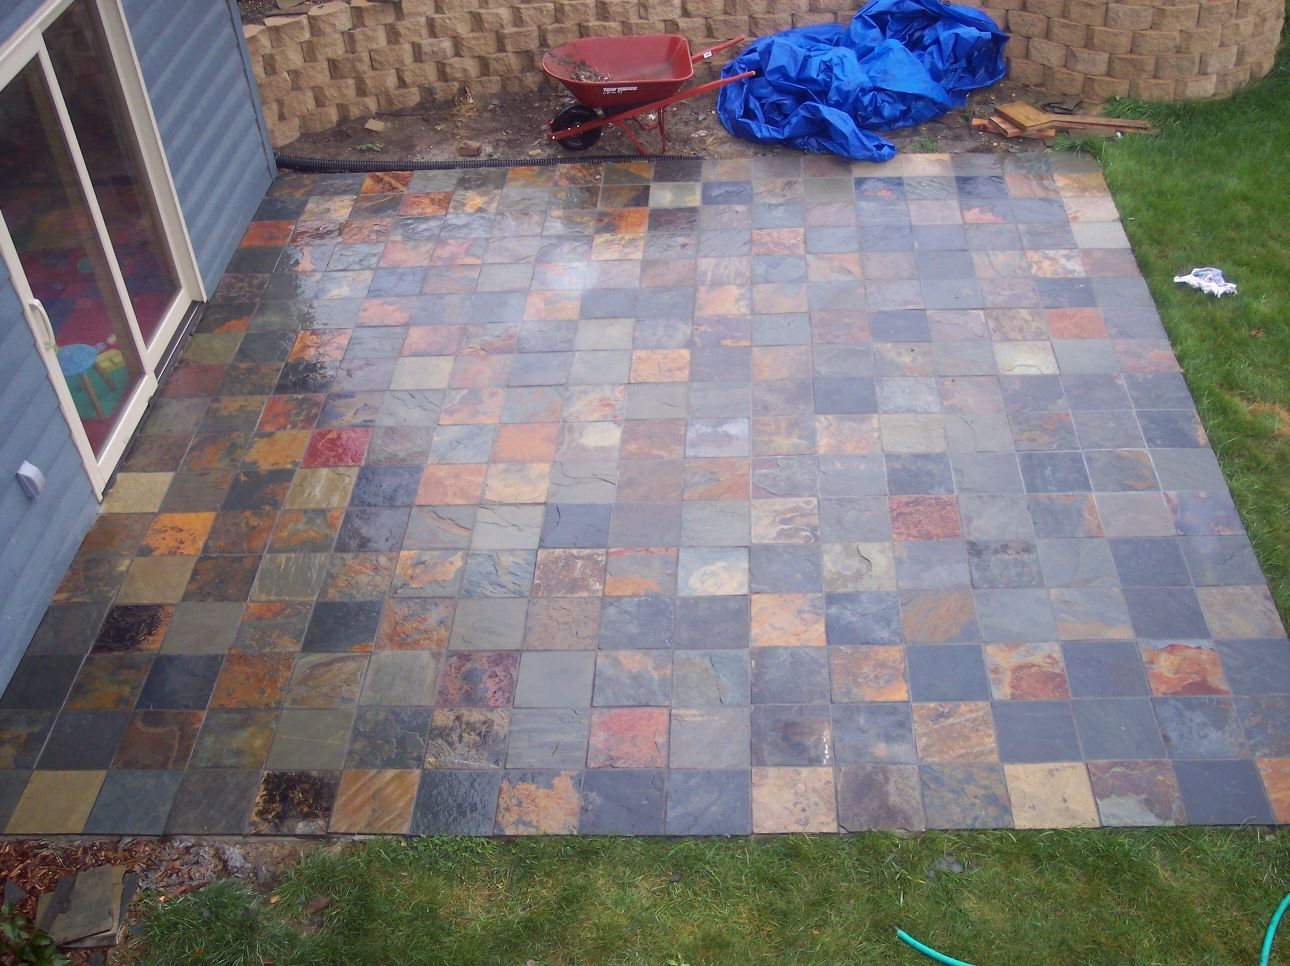 Slate Tile Over Concrete Patio 1290 x 966